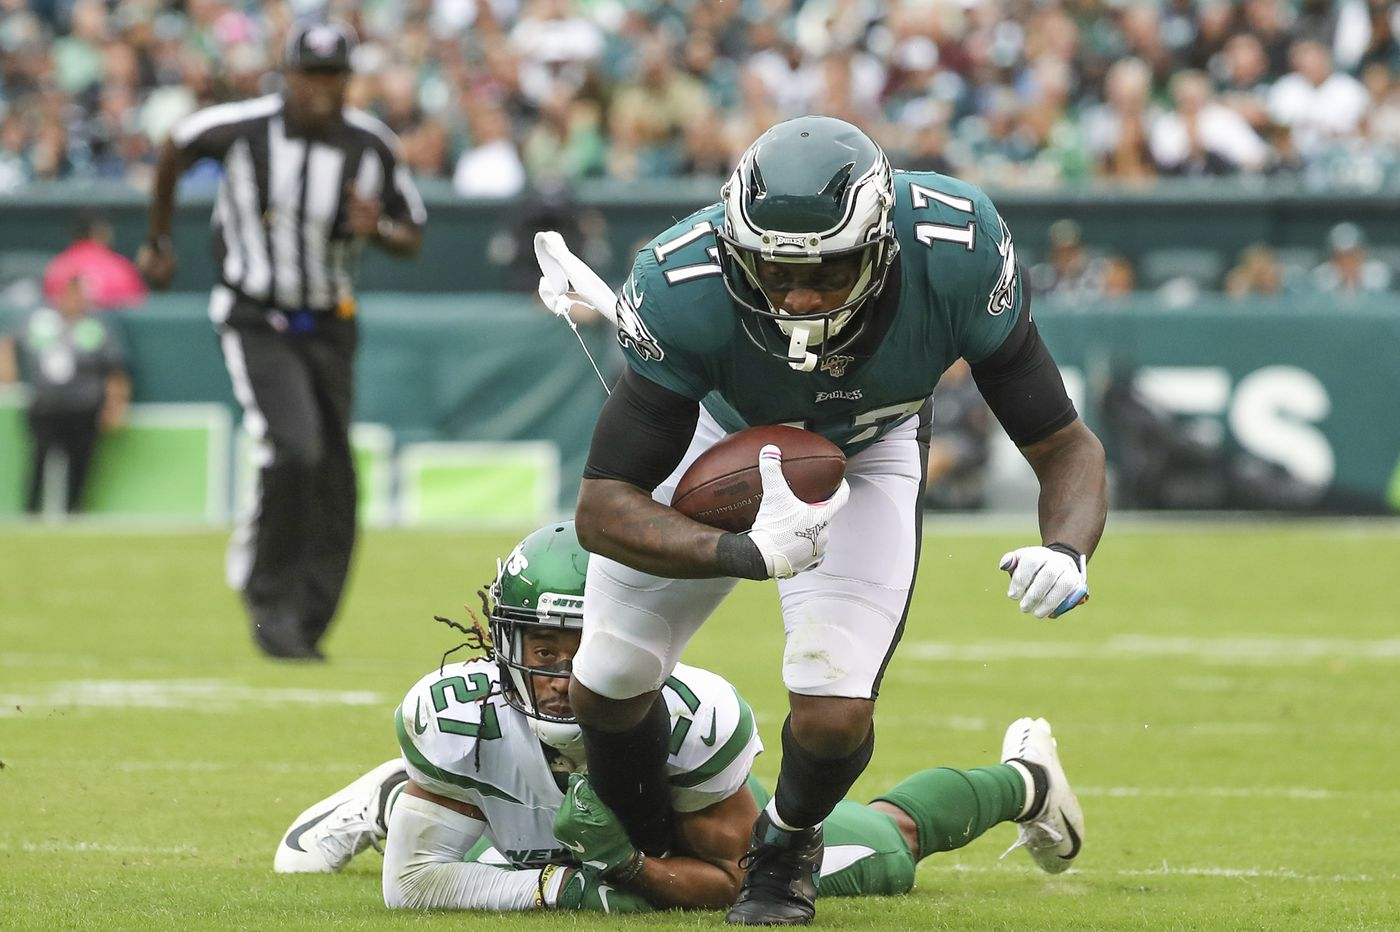 How much longer can the Eagles survive without DeSean Jackson?